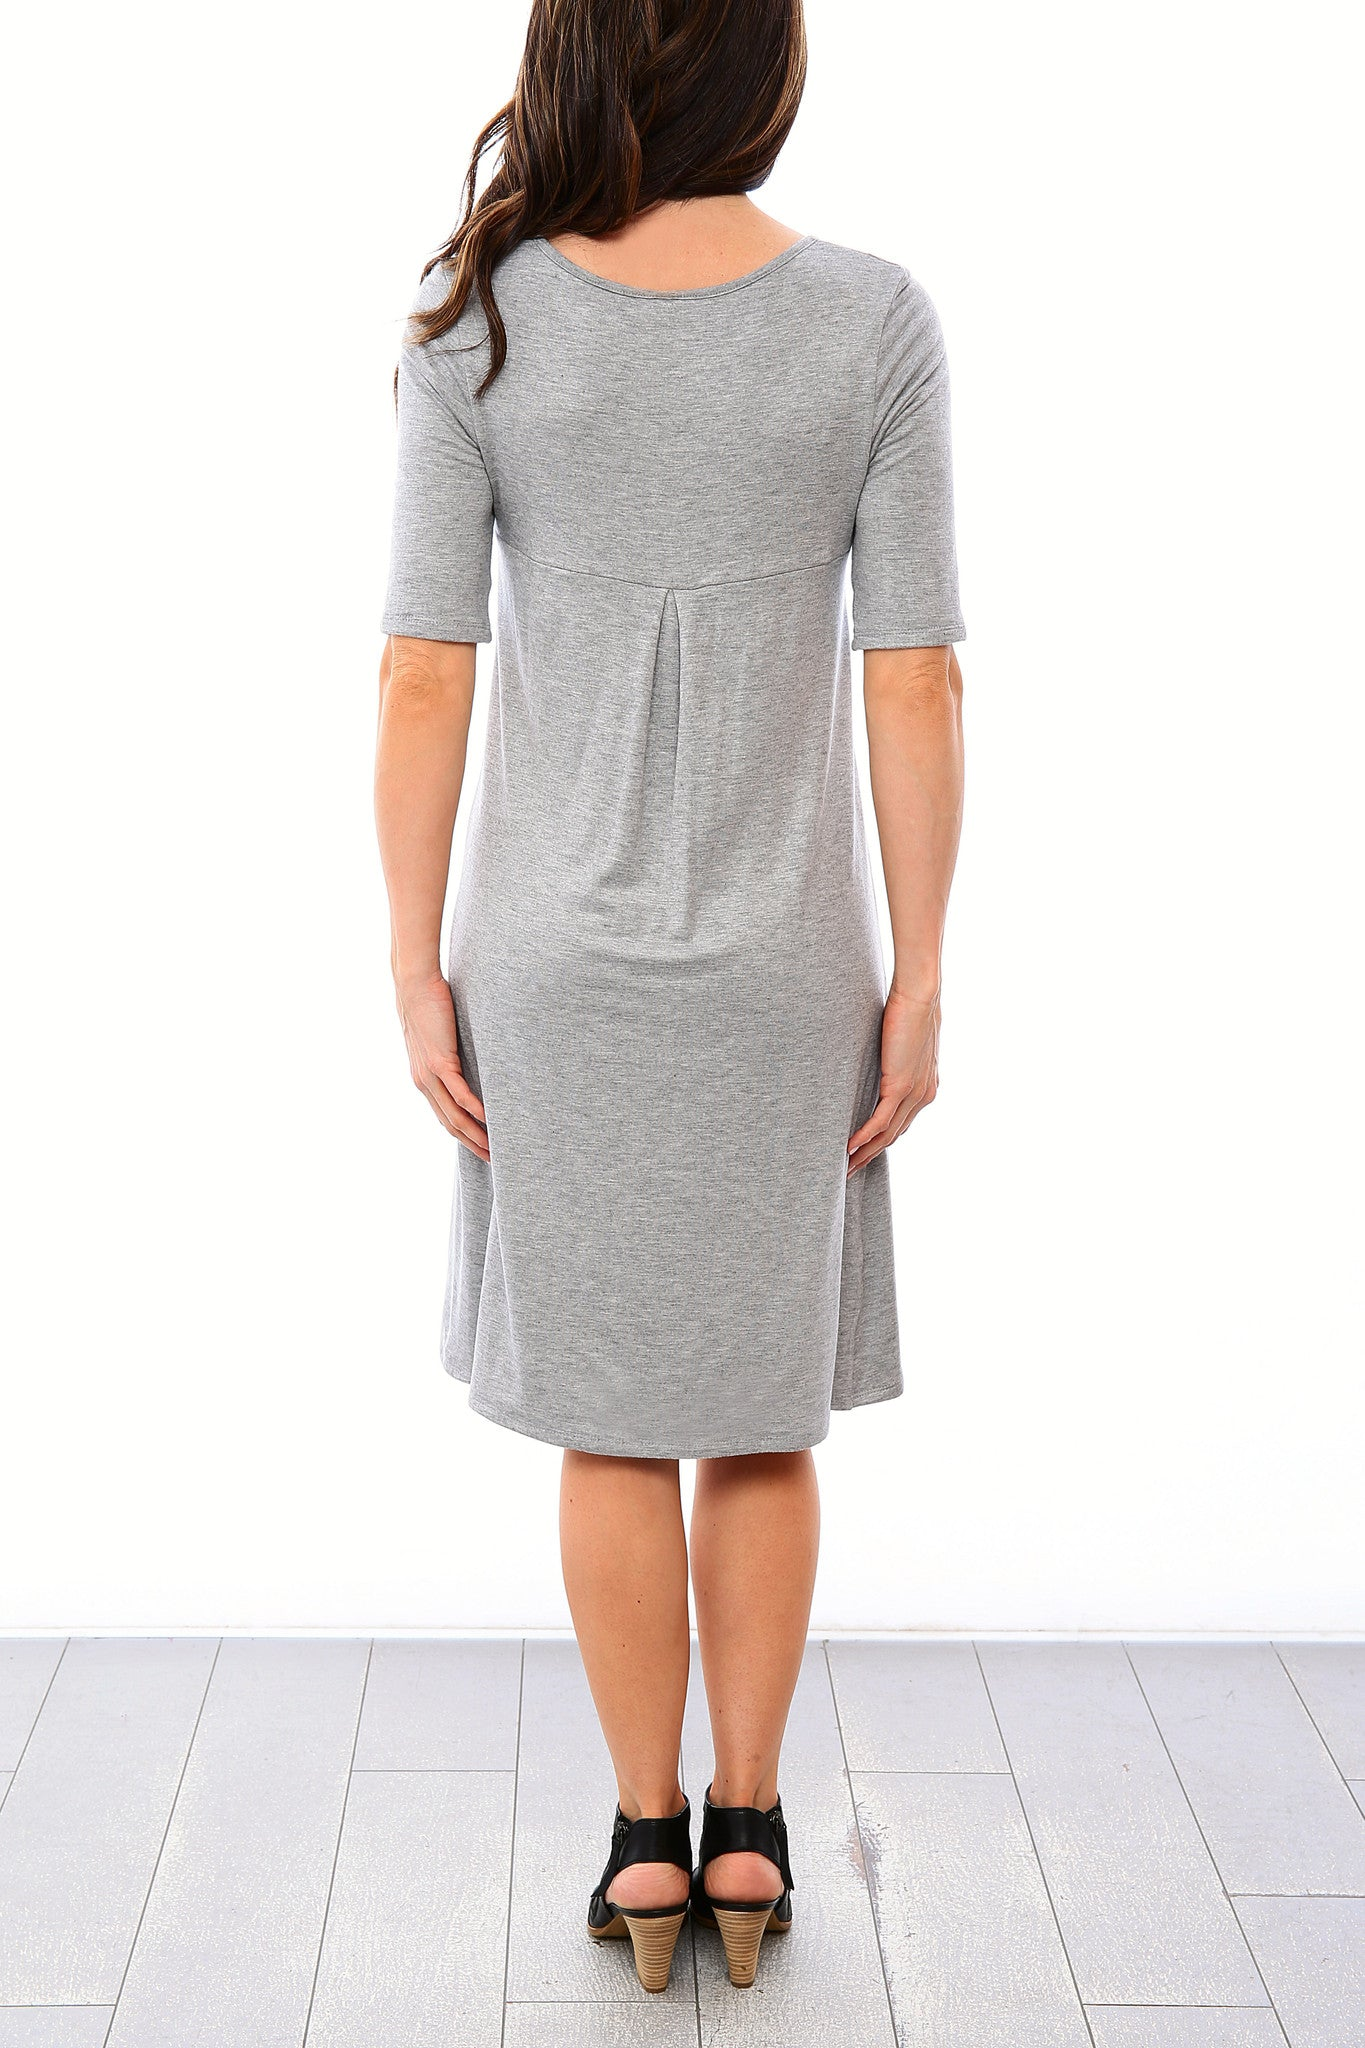 Swing Nursing Dress - Heather Grey - Final Sale